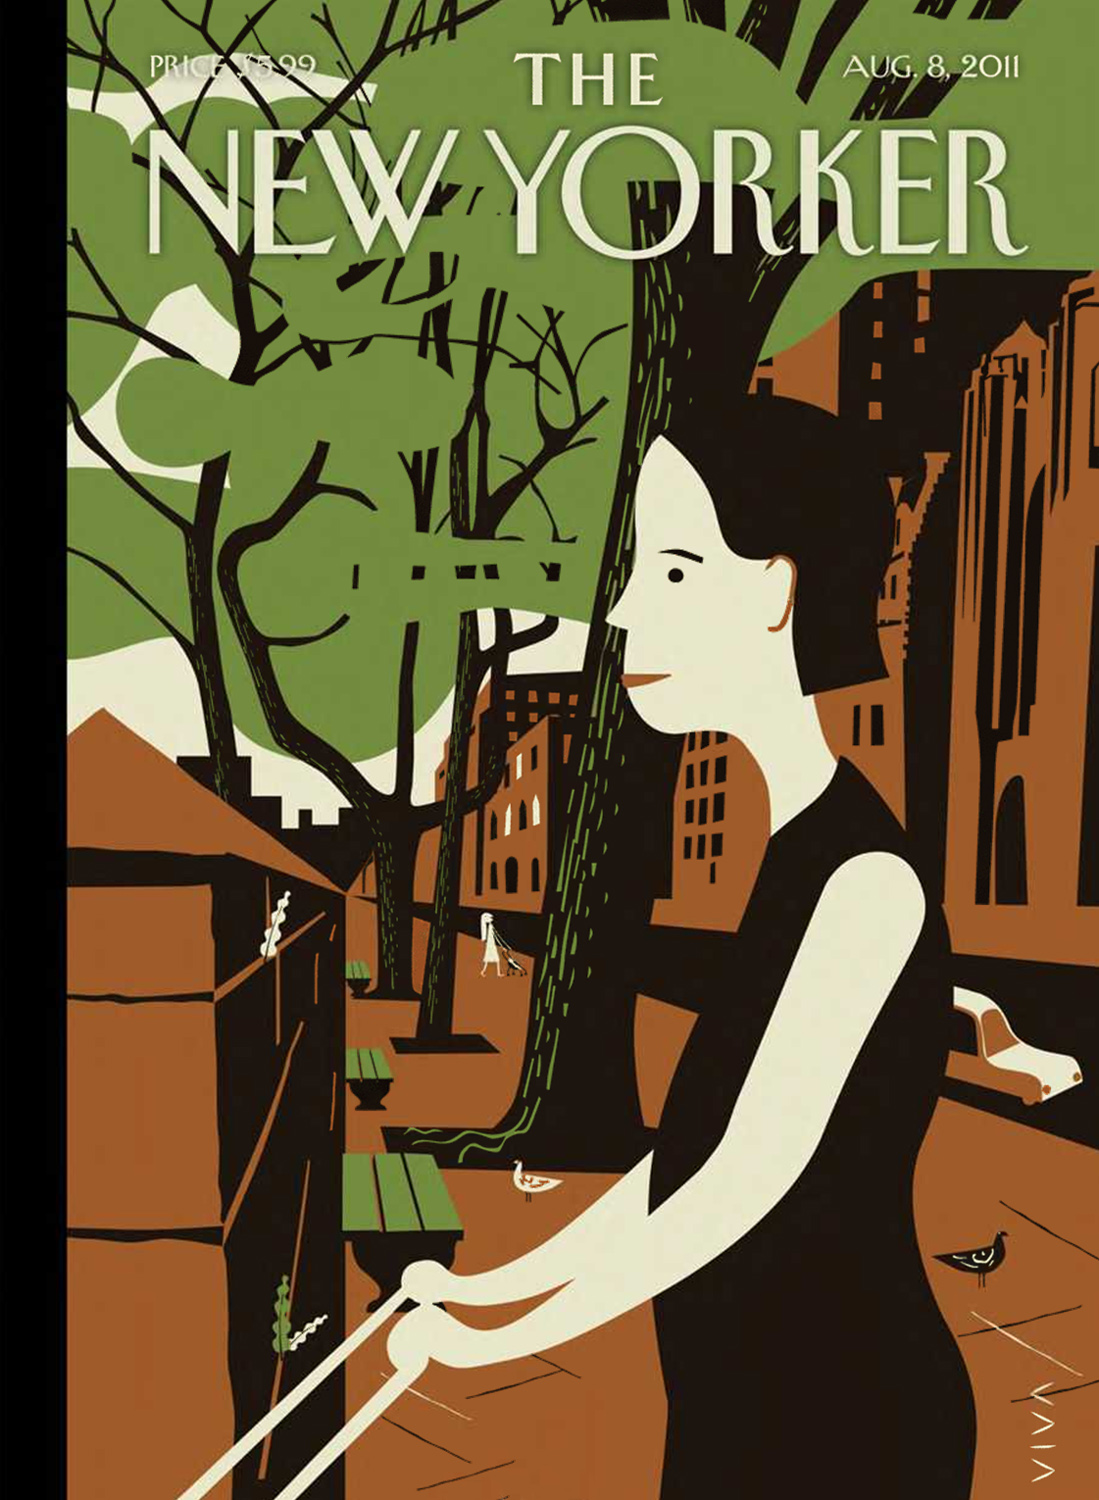 new yorker essays The new yorker relaunched its website today with a complete makeover, signaling the first step until the website puts up its metered paywall sometime in the fall, the new yorker editors will be releasing.